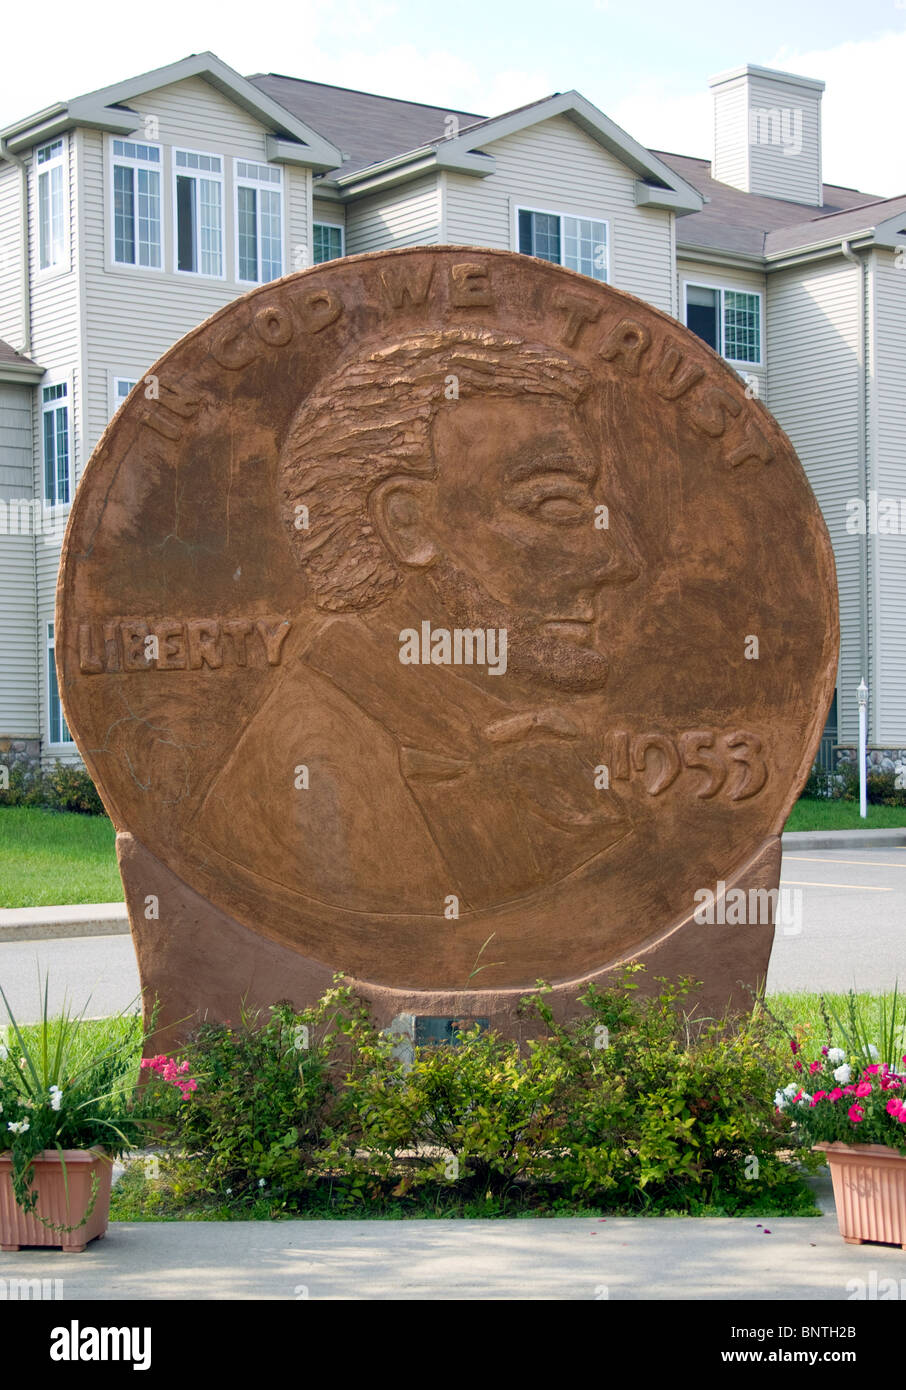 Giant Penny in Woodruff Wisconsin - Stock Image